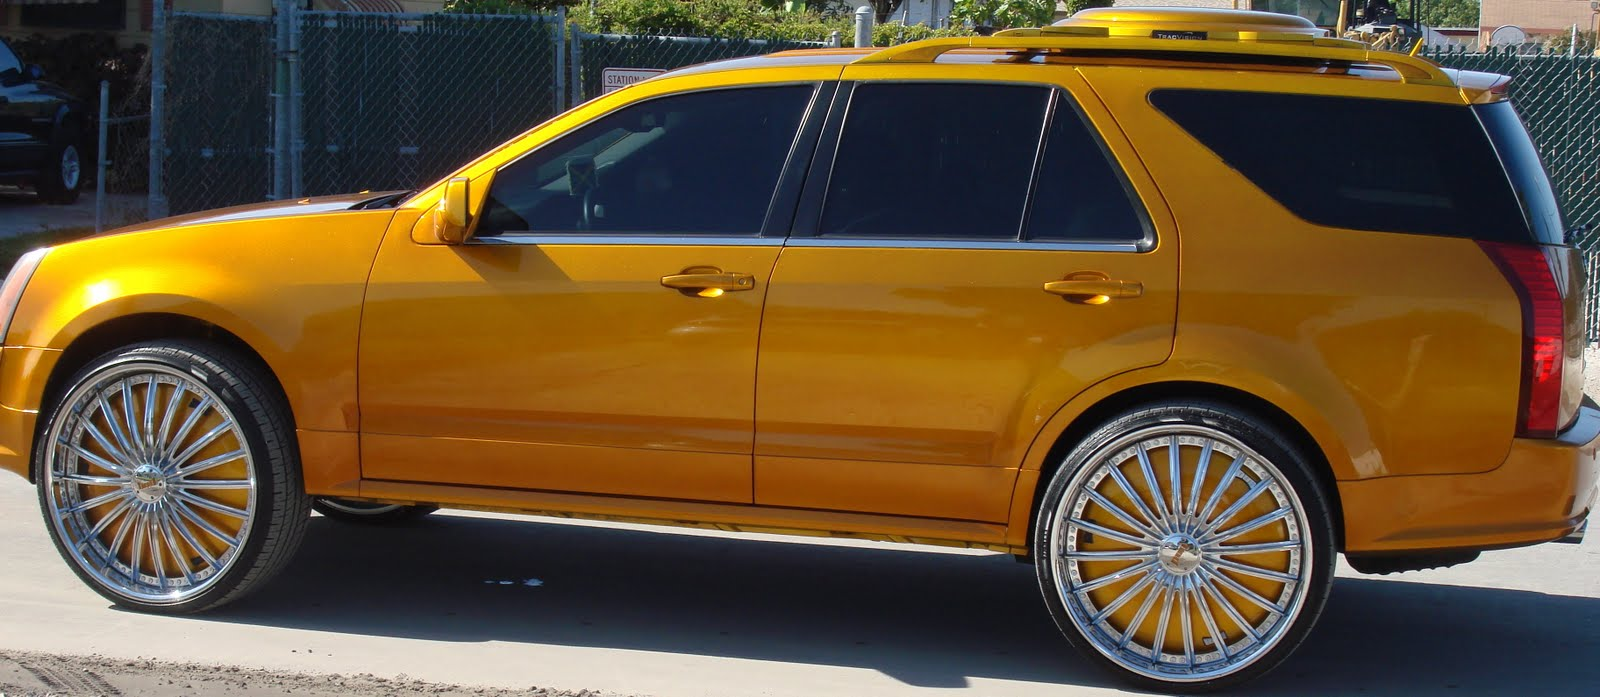 Whytee954 Cars On Big Rims Bully Pitbulls Candy Gold